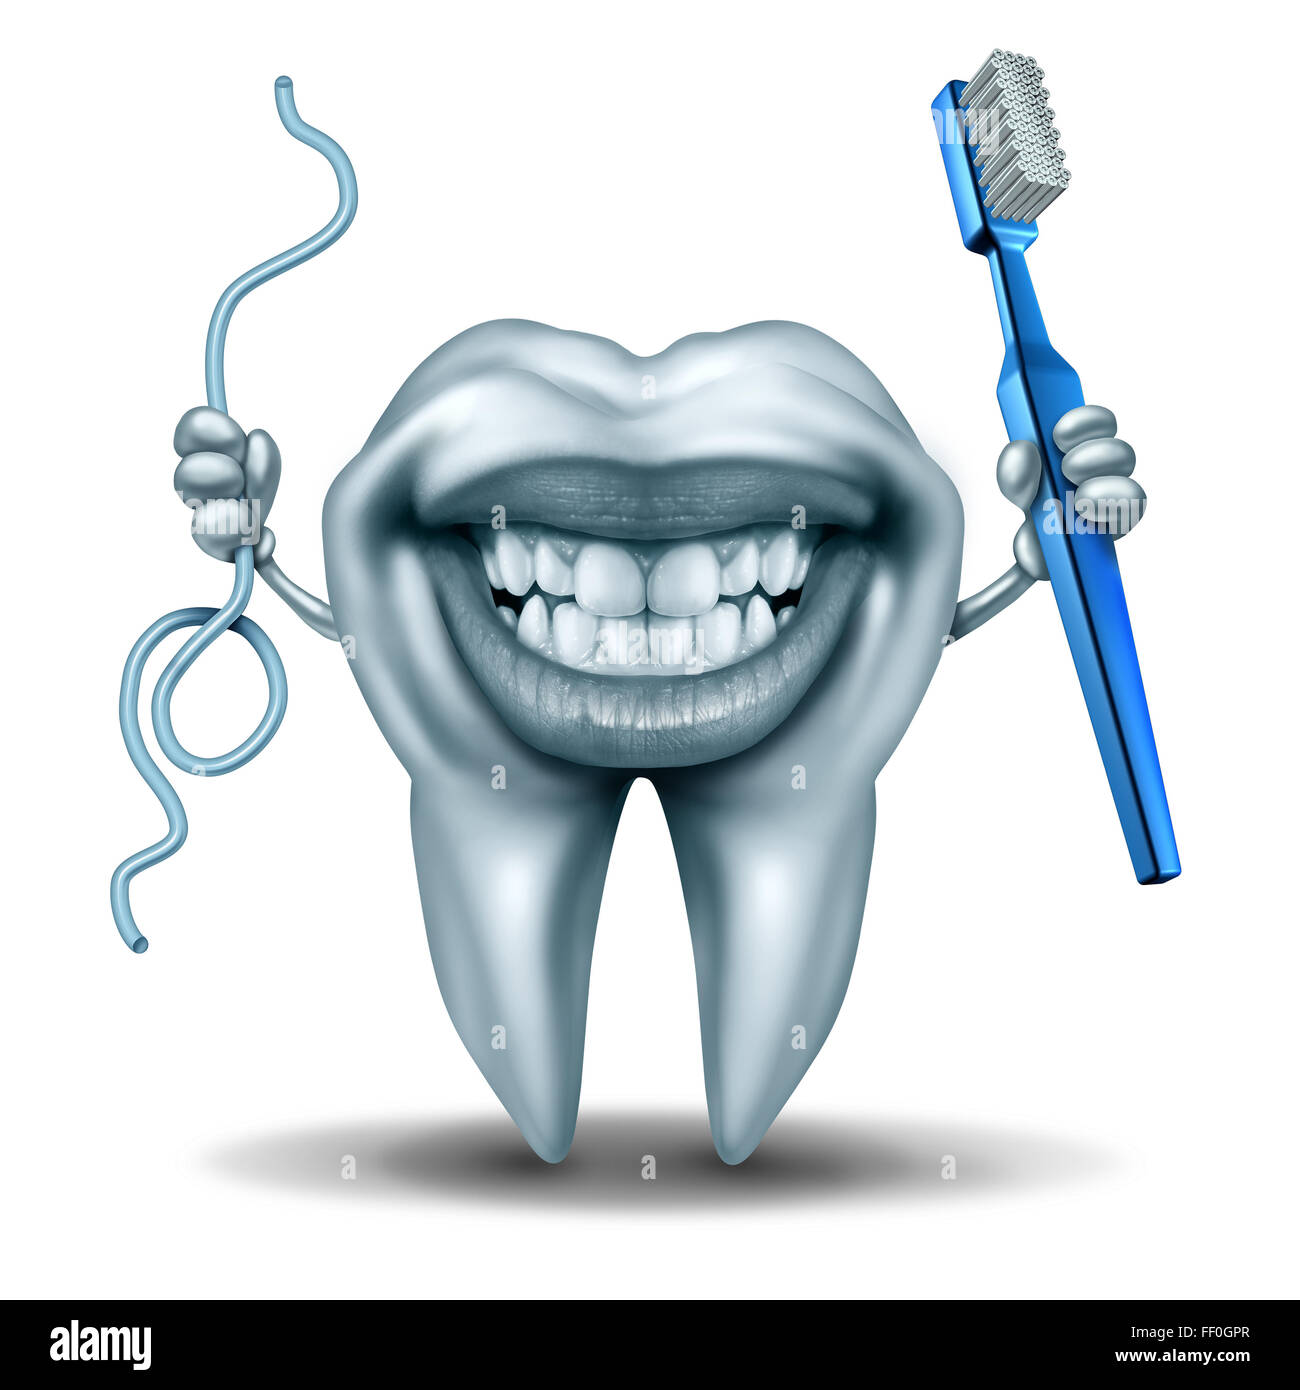 Teeth cleaning character holding a toothbrush and a string of floss with a wide laughing smile on the human molar - Stock Image